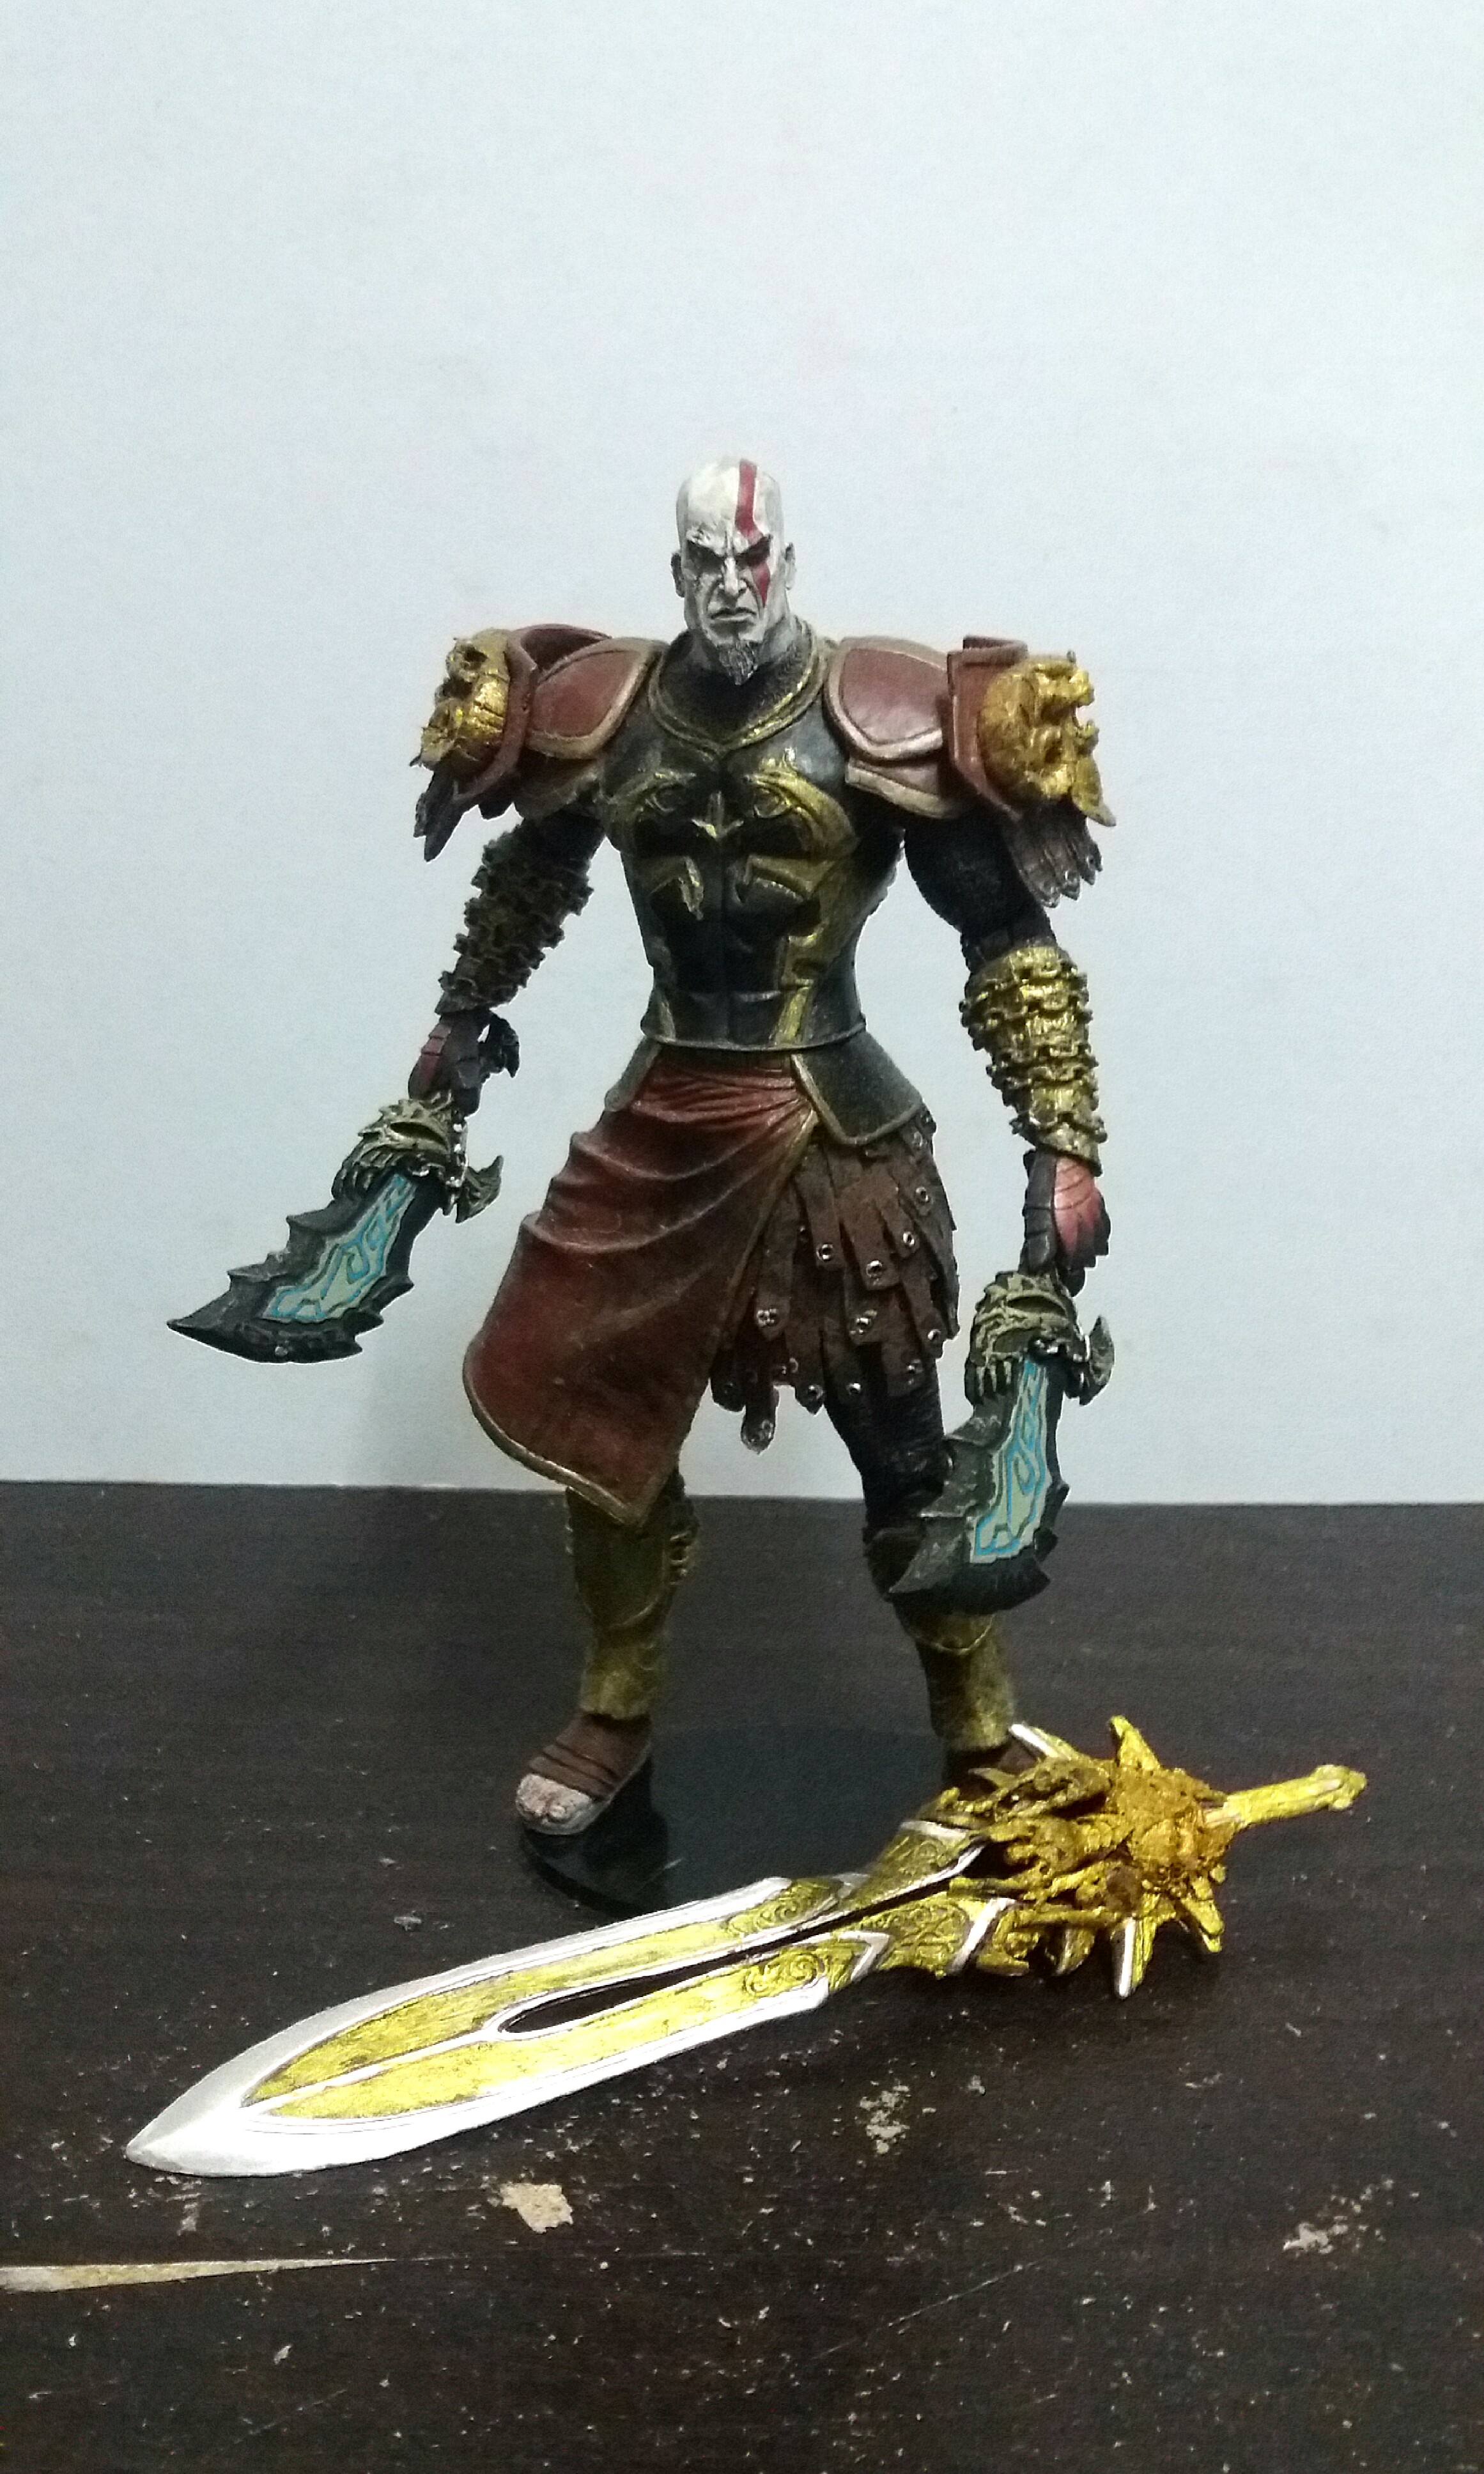 NECA God of War Kratos with Ares Armor on Carousell